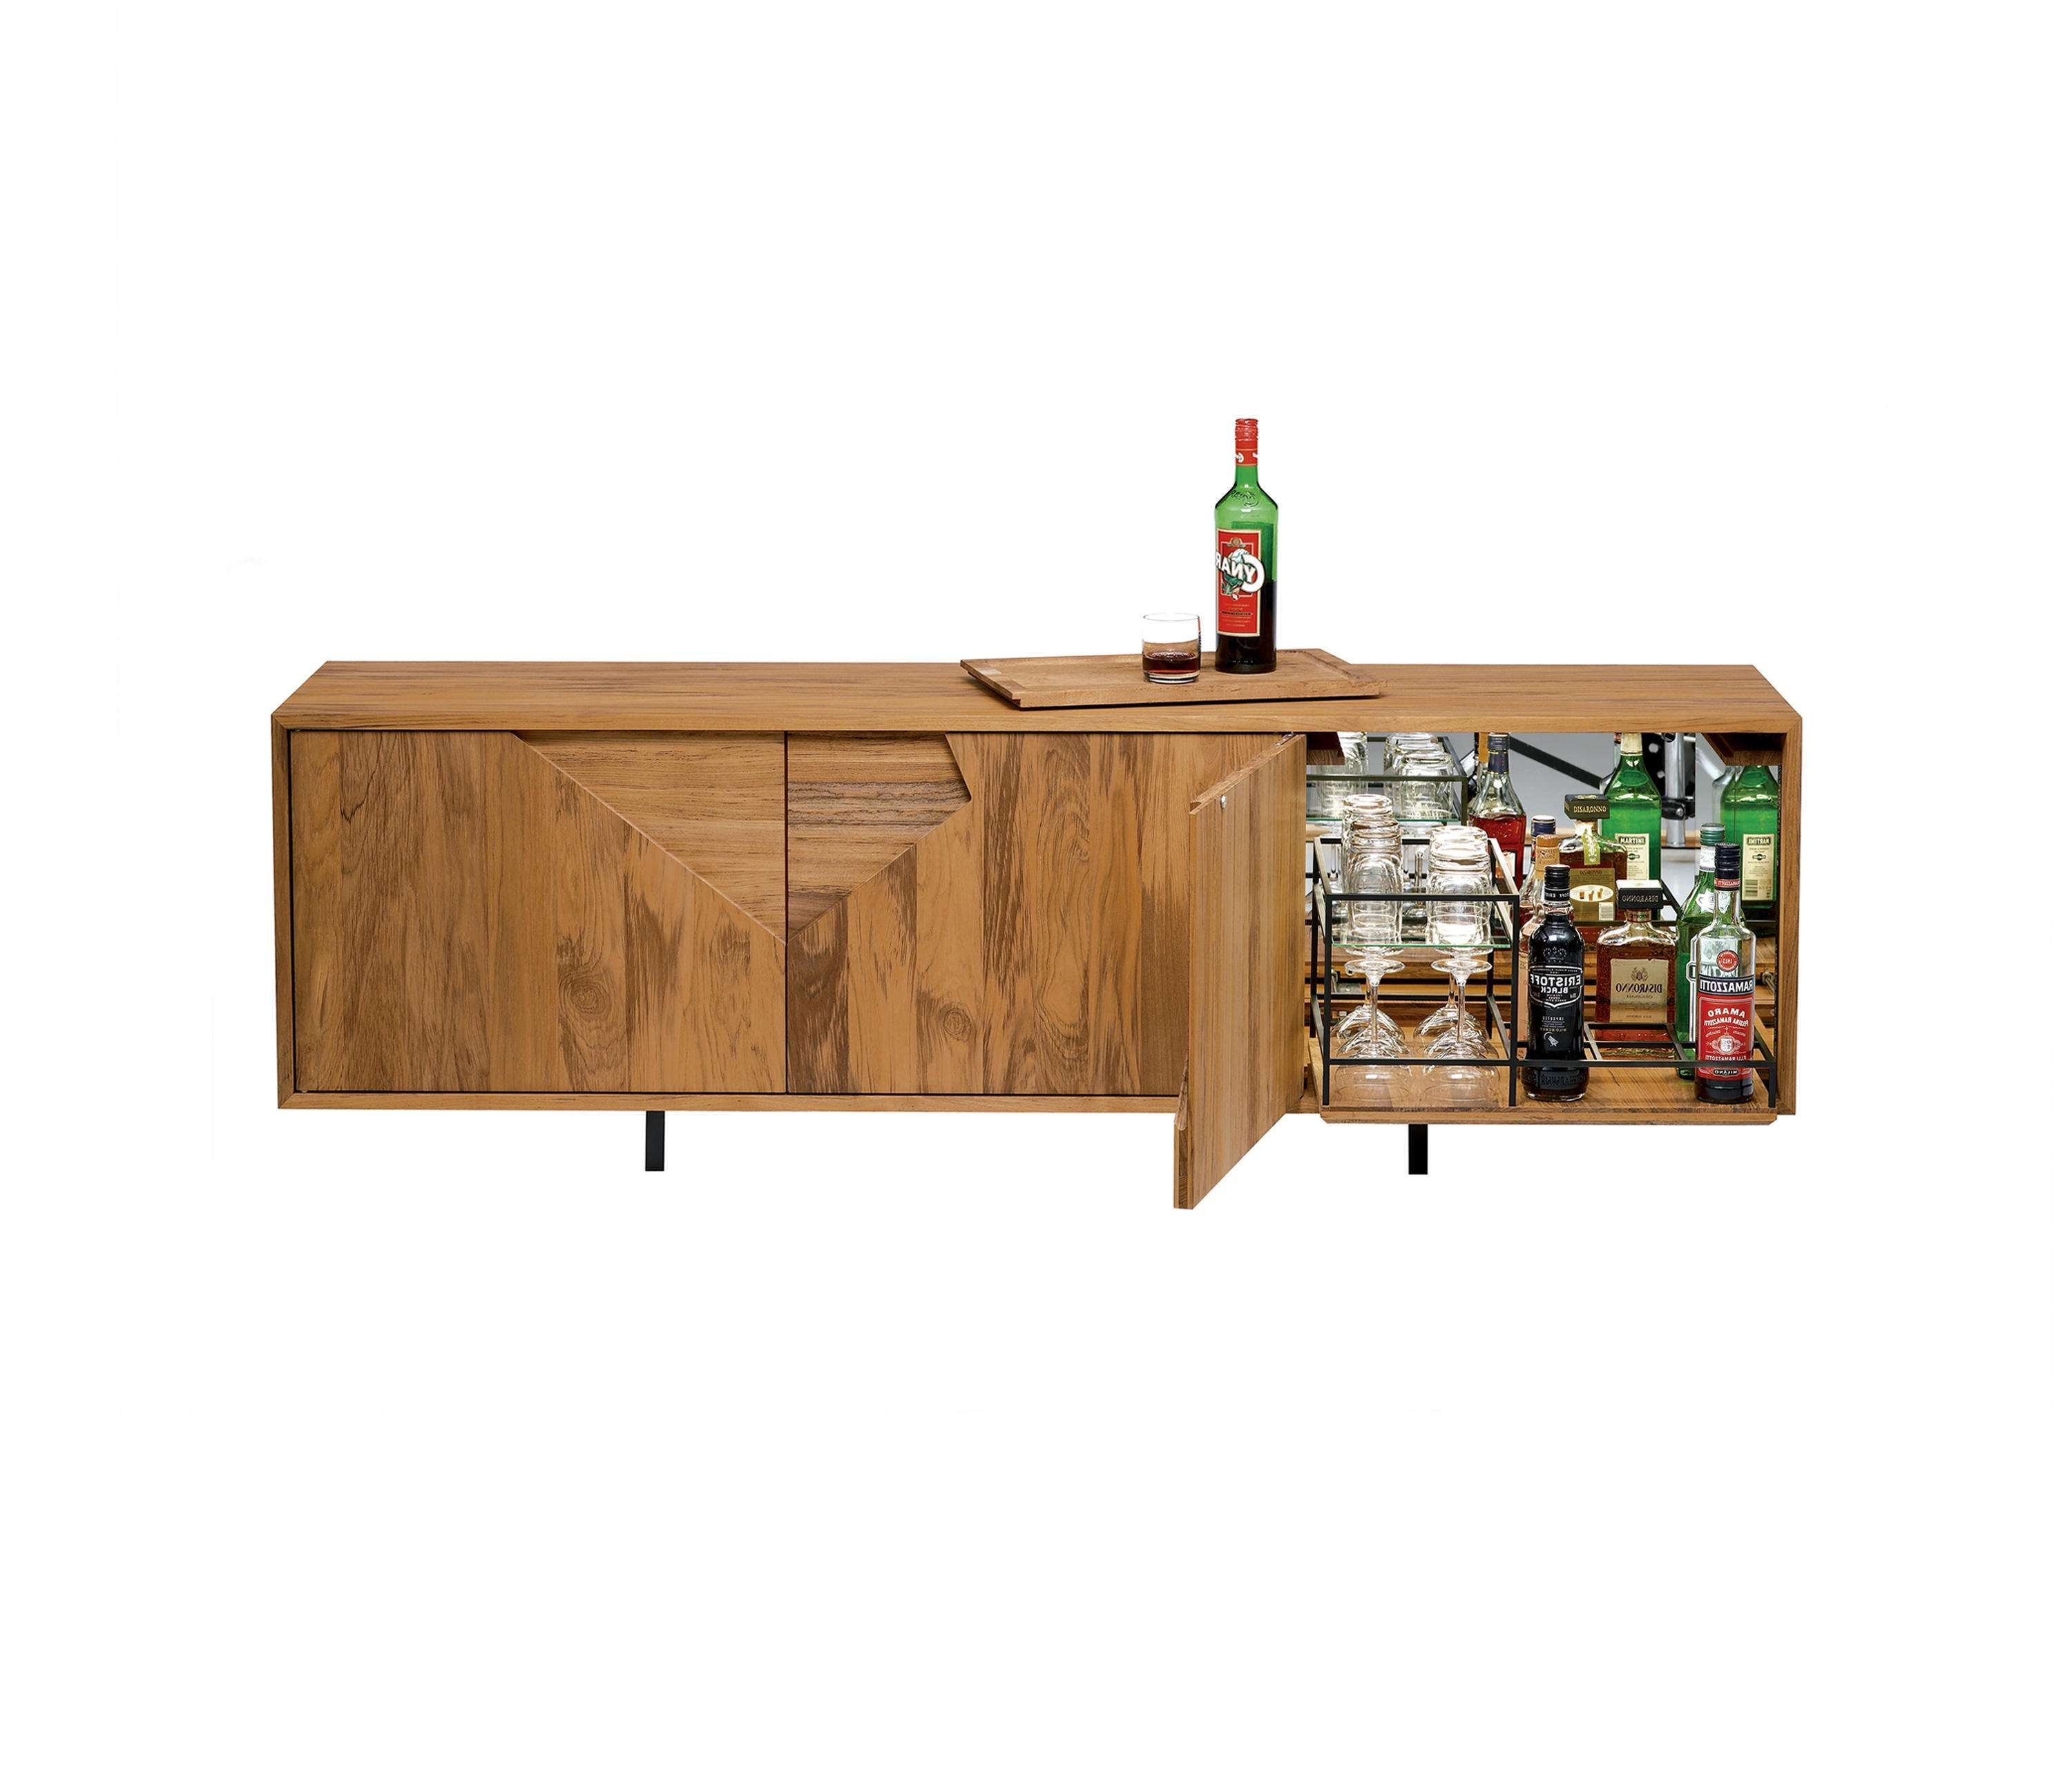 Sepuluh Sideboard – Sideboards From Inchfurniture | Architonic Inside Bar Sideboards (View 13 of 20)